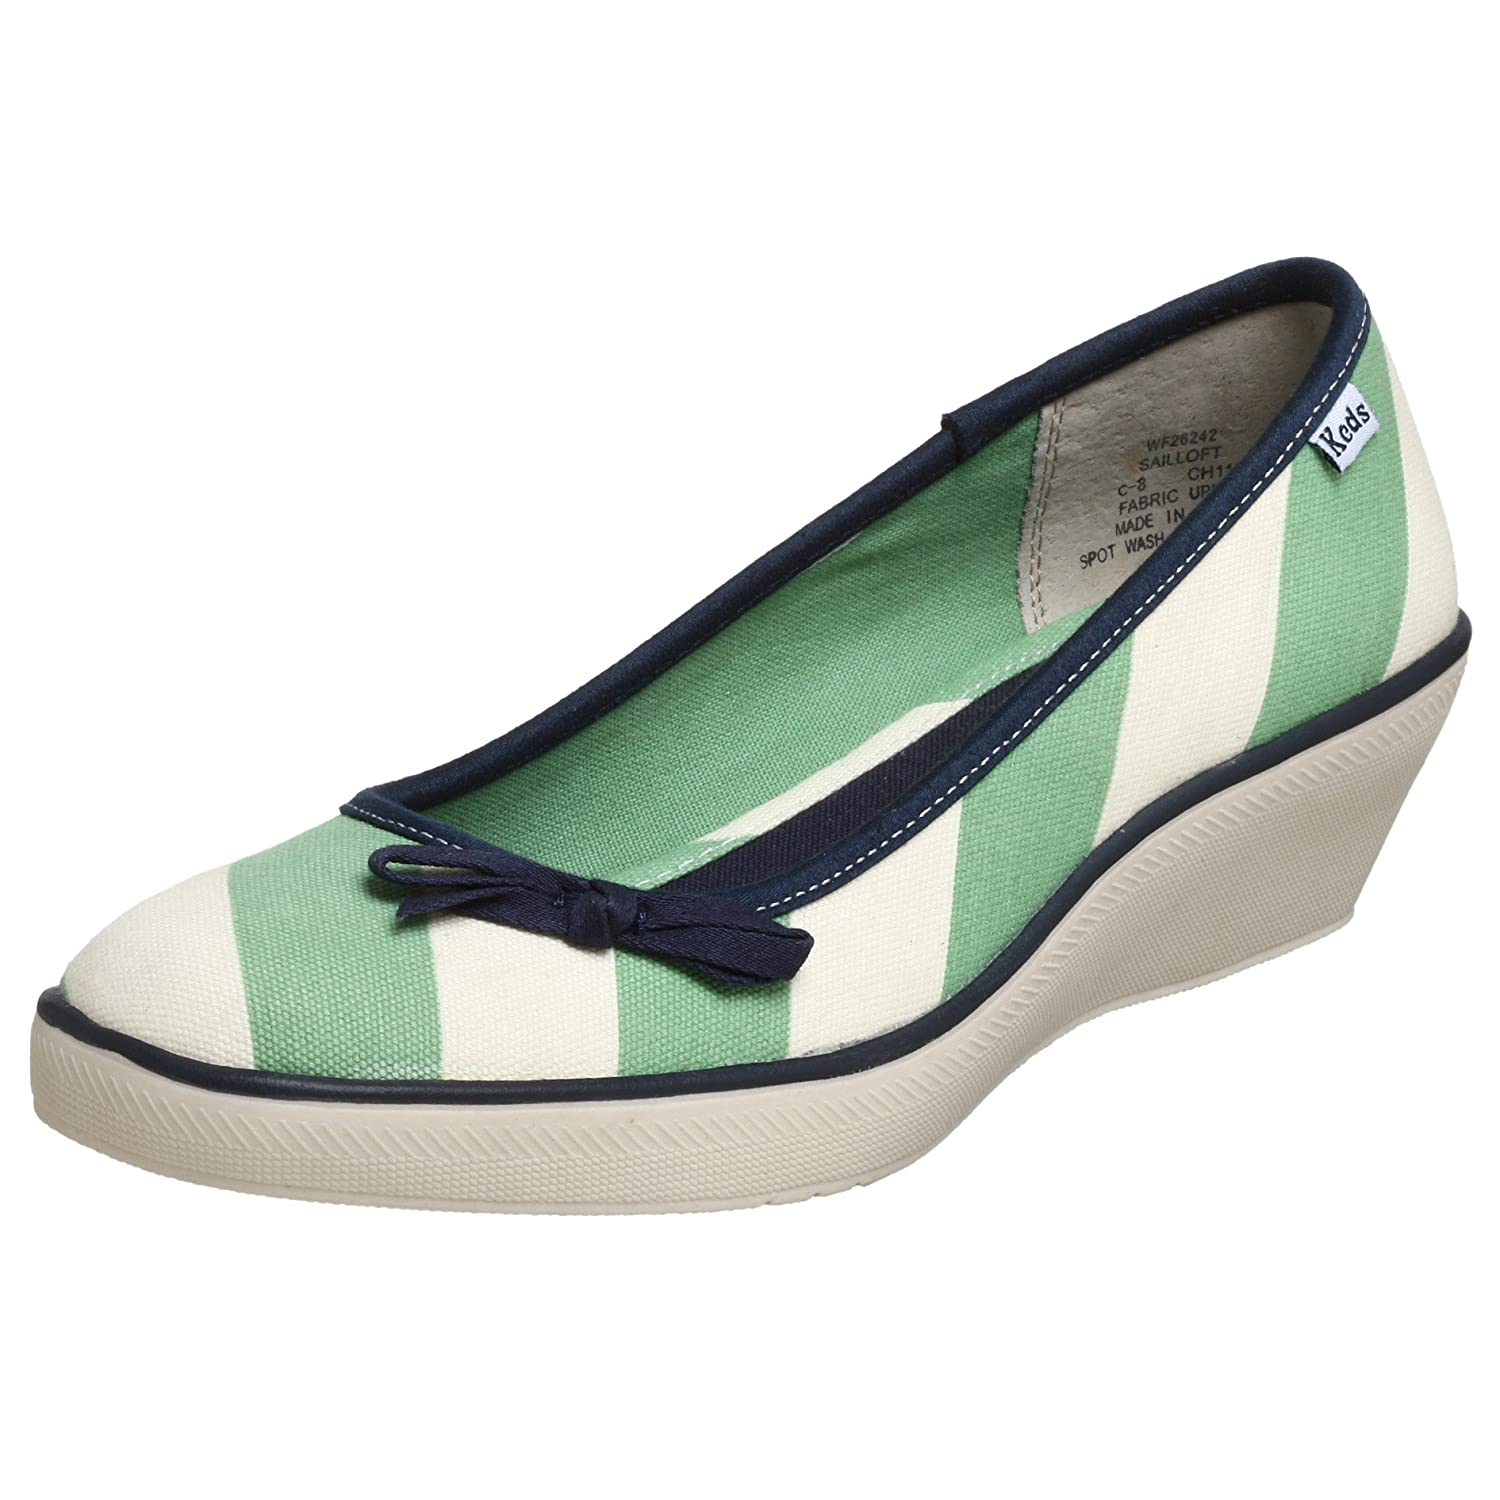 Keds Sailloft Wedge Sneaker - Free Overnight Shipping & Return Shipping: Endless.com :  wedges bow trim stripes